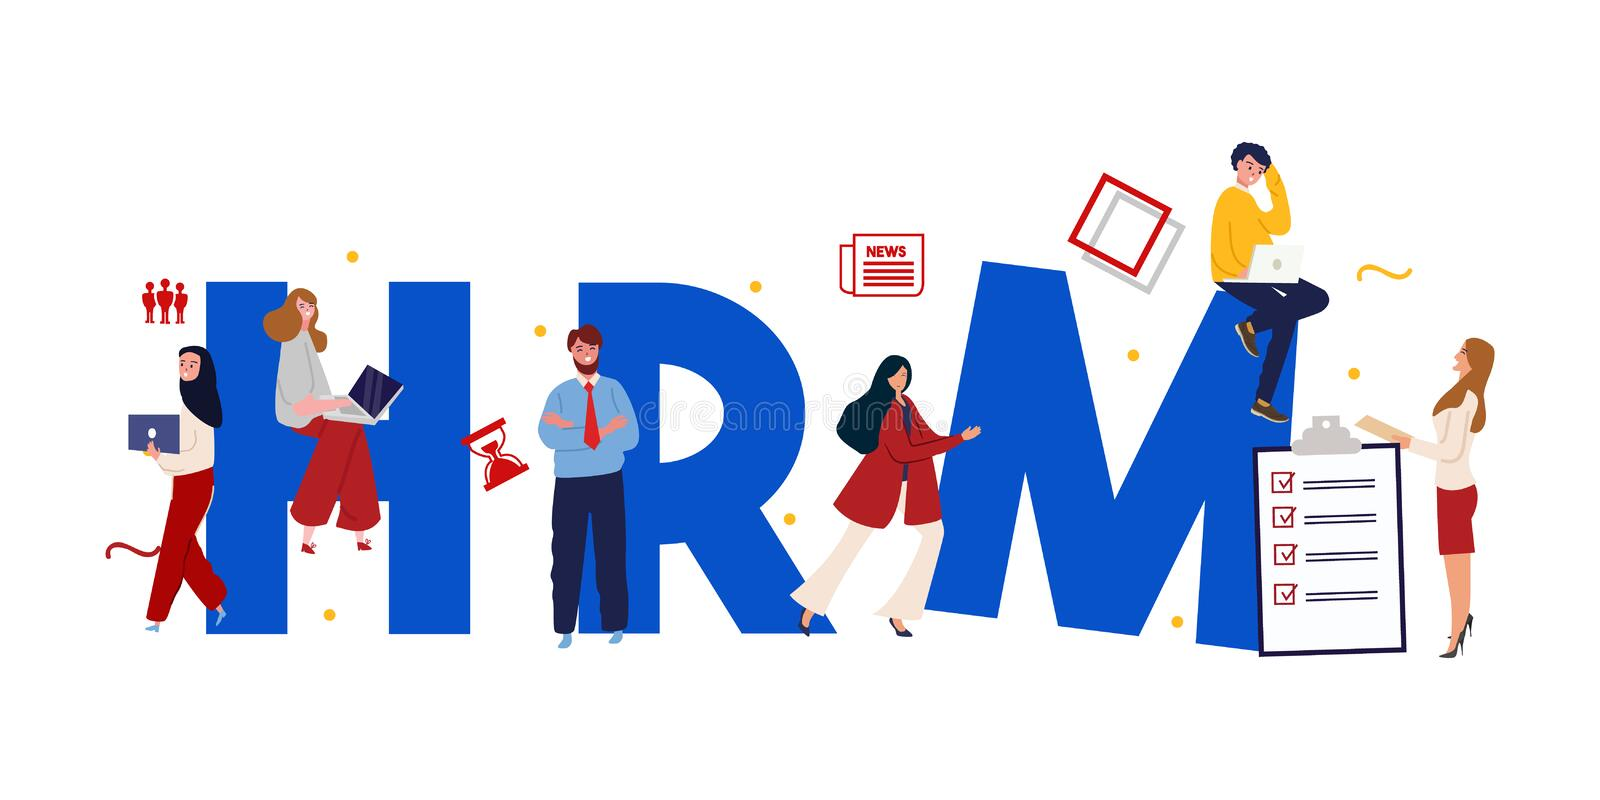 Human Resource Management System Stock Illustration